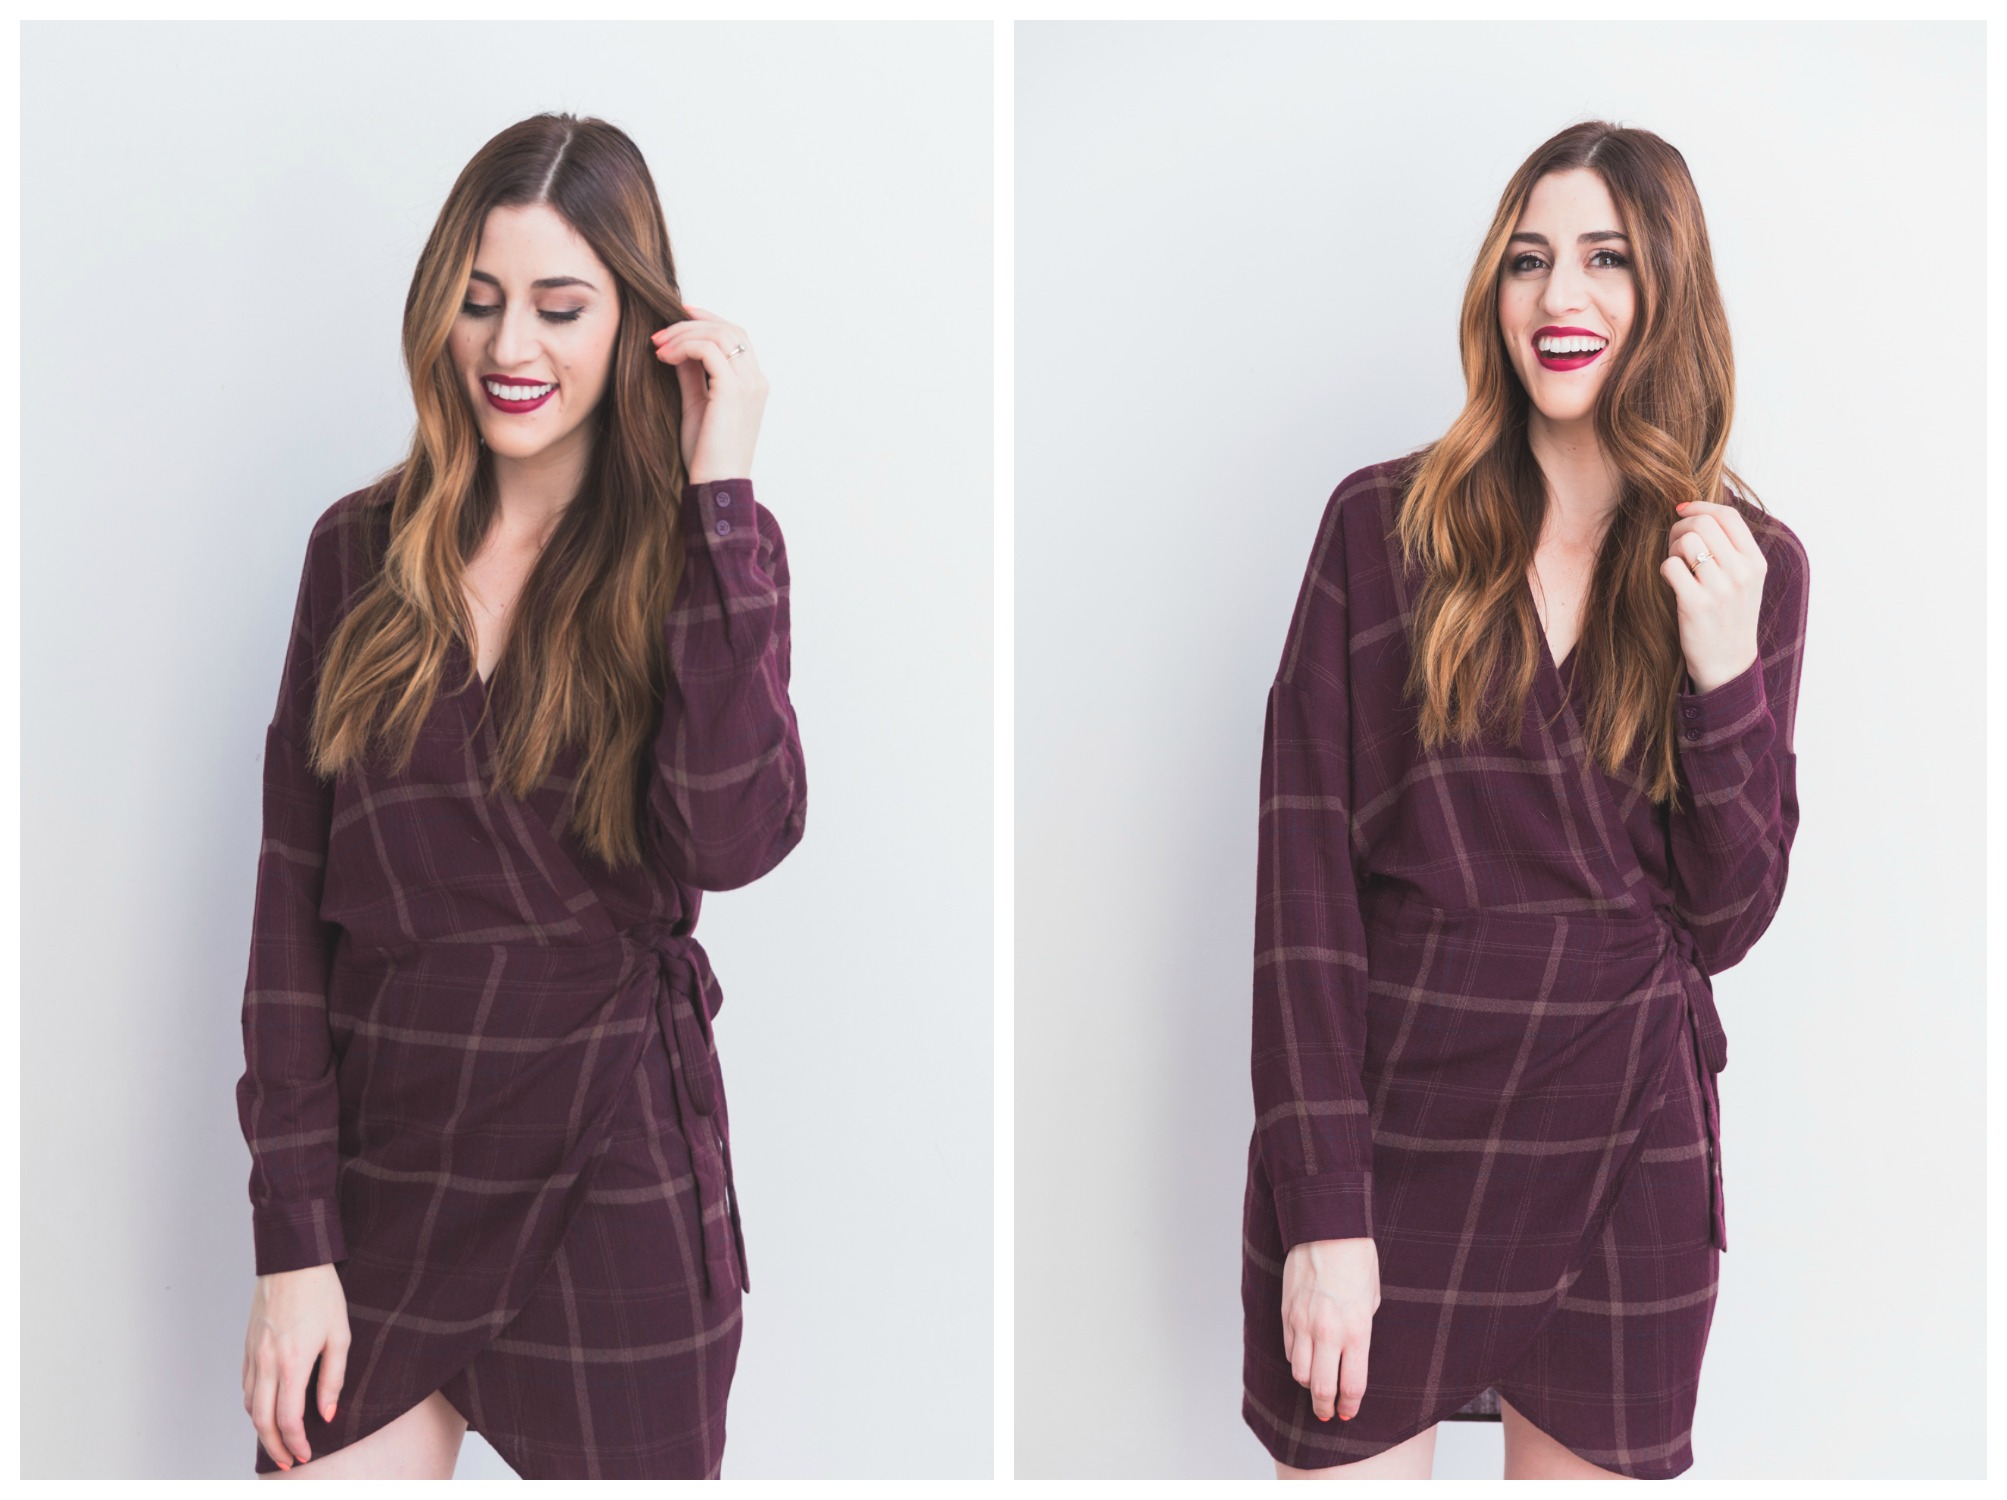 winter style - Kallie Branciforte of But First, Coffee